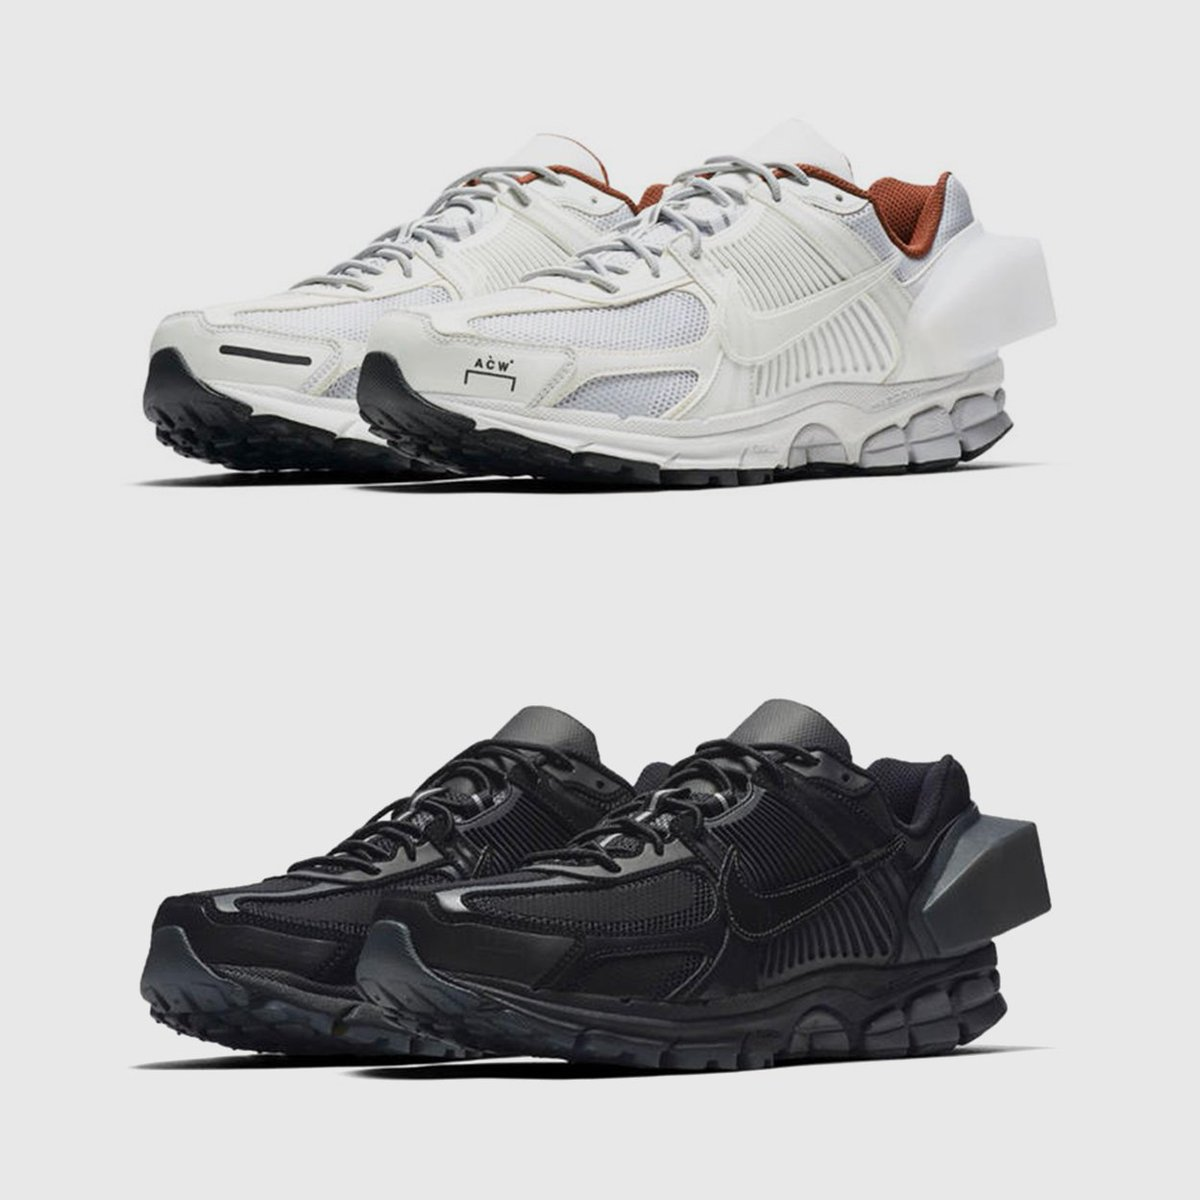 243685a8e856  woodwood  nike  acoldwall Read more about the sneaker right here   https   www.woodwood.com news 1058-nike-zoom-vomero-+5-x-a-cold-wall …